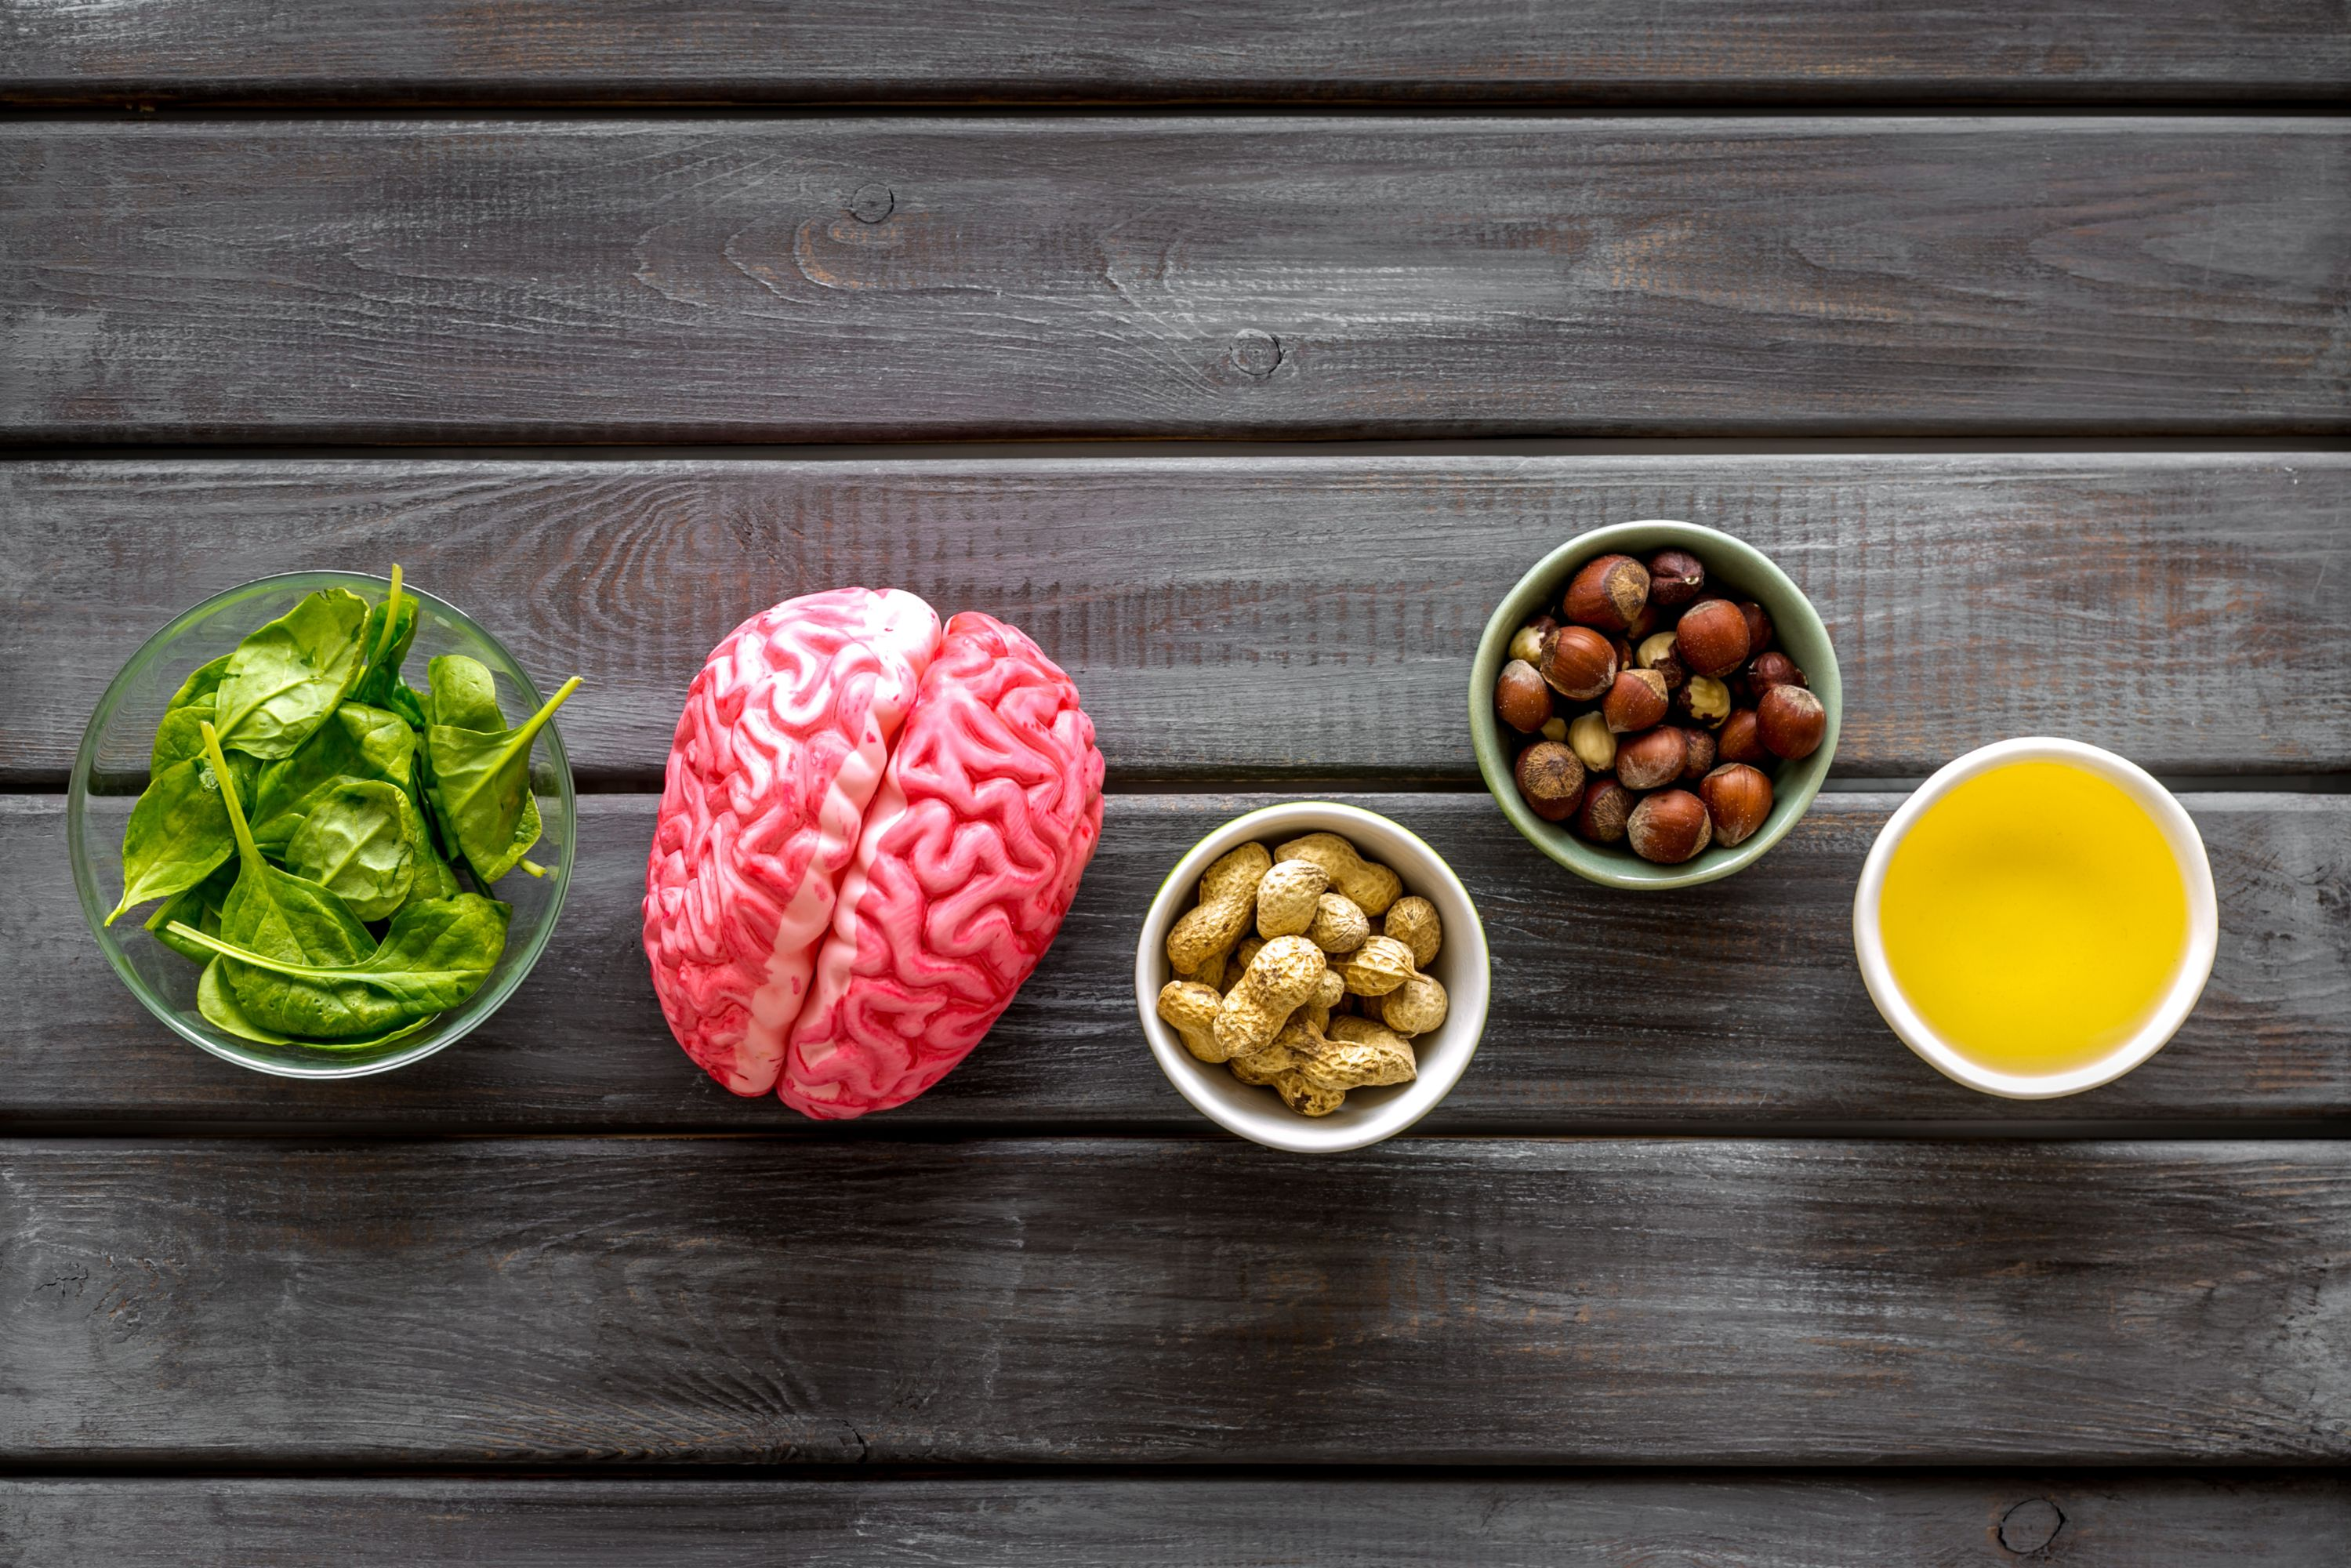 Lifestyle Changes to Improve Brain Health